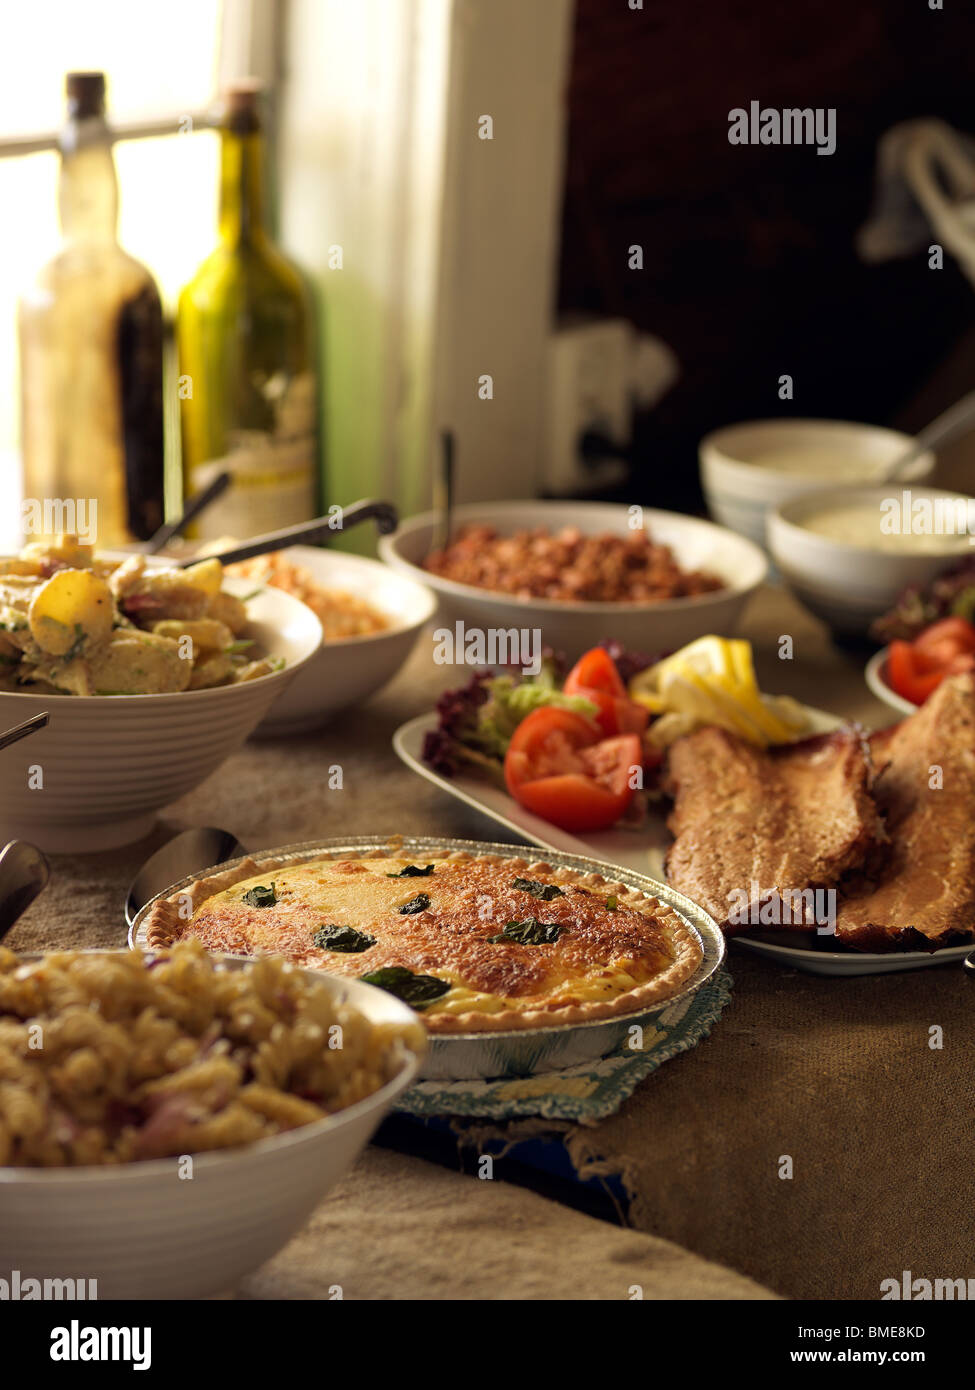 Varied food served at buffet - Stock Image